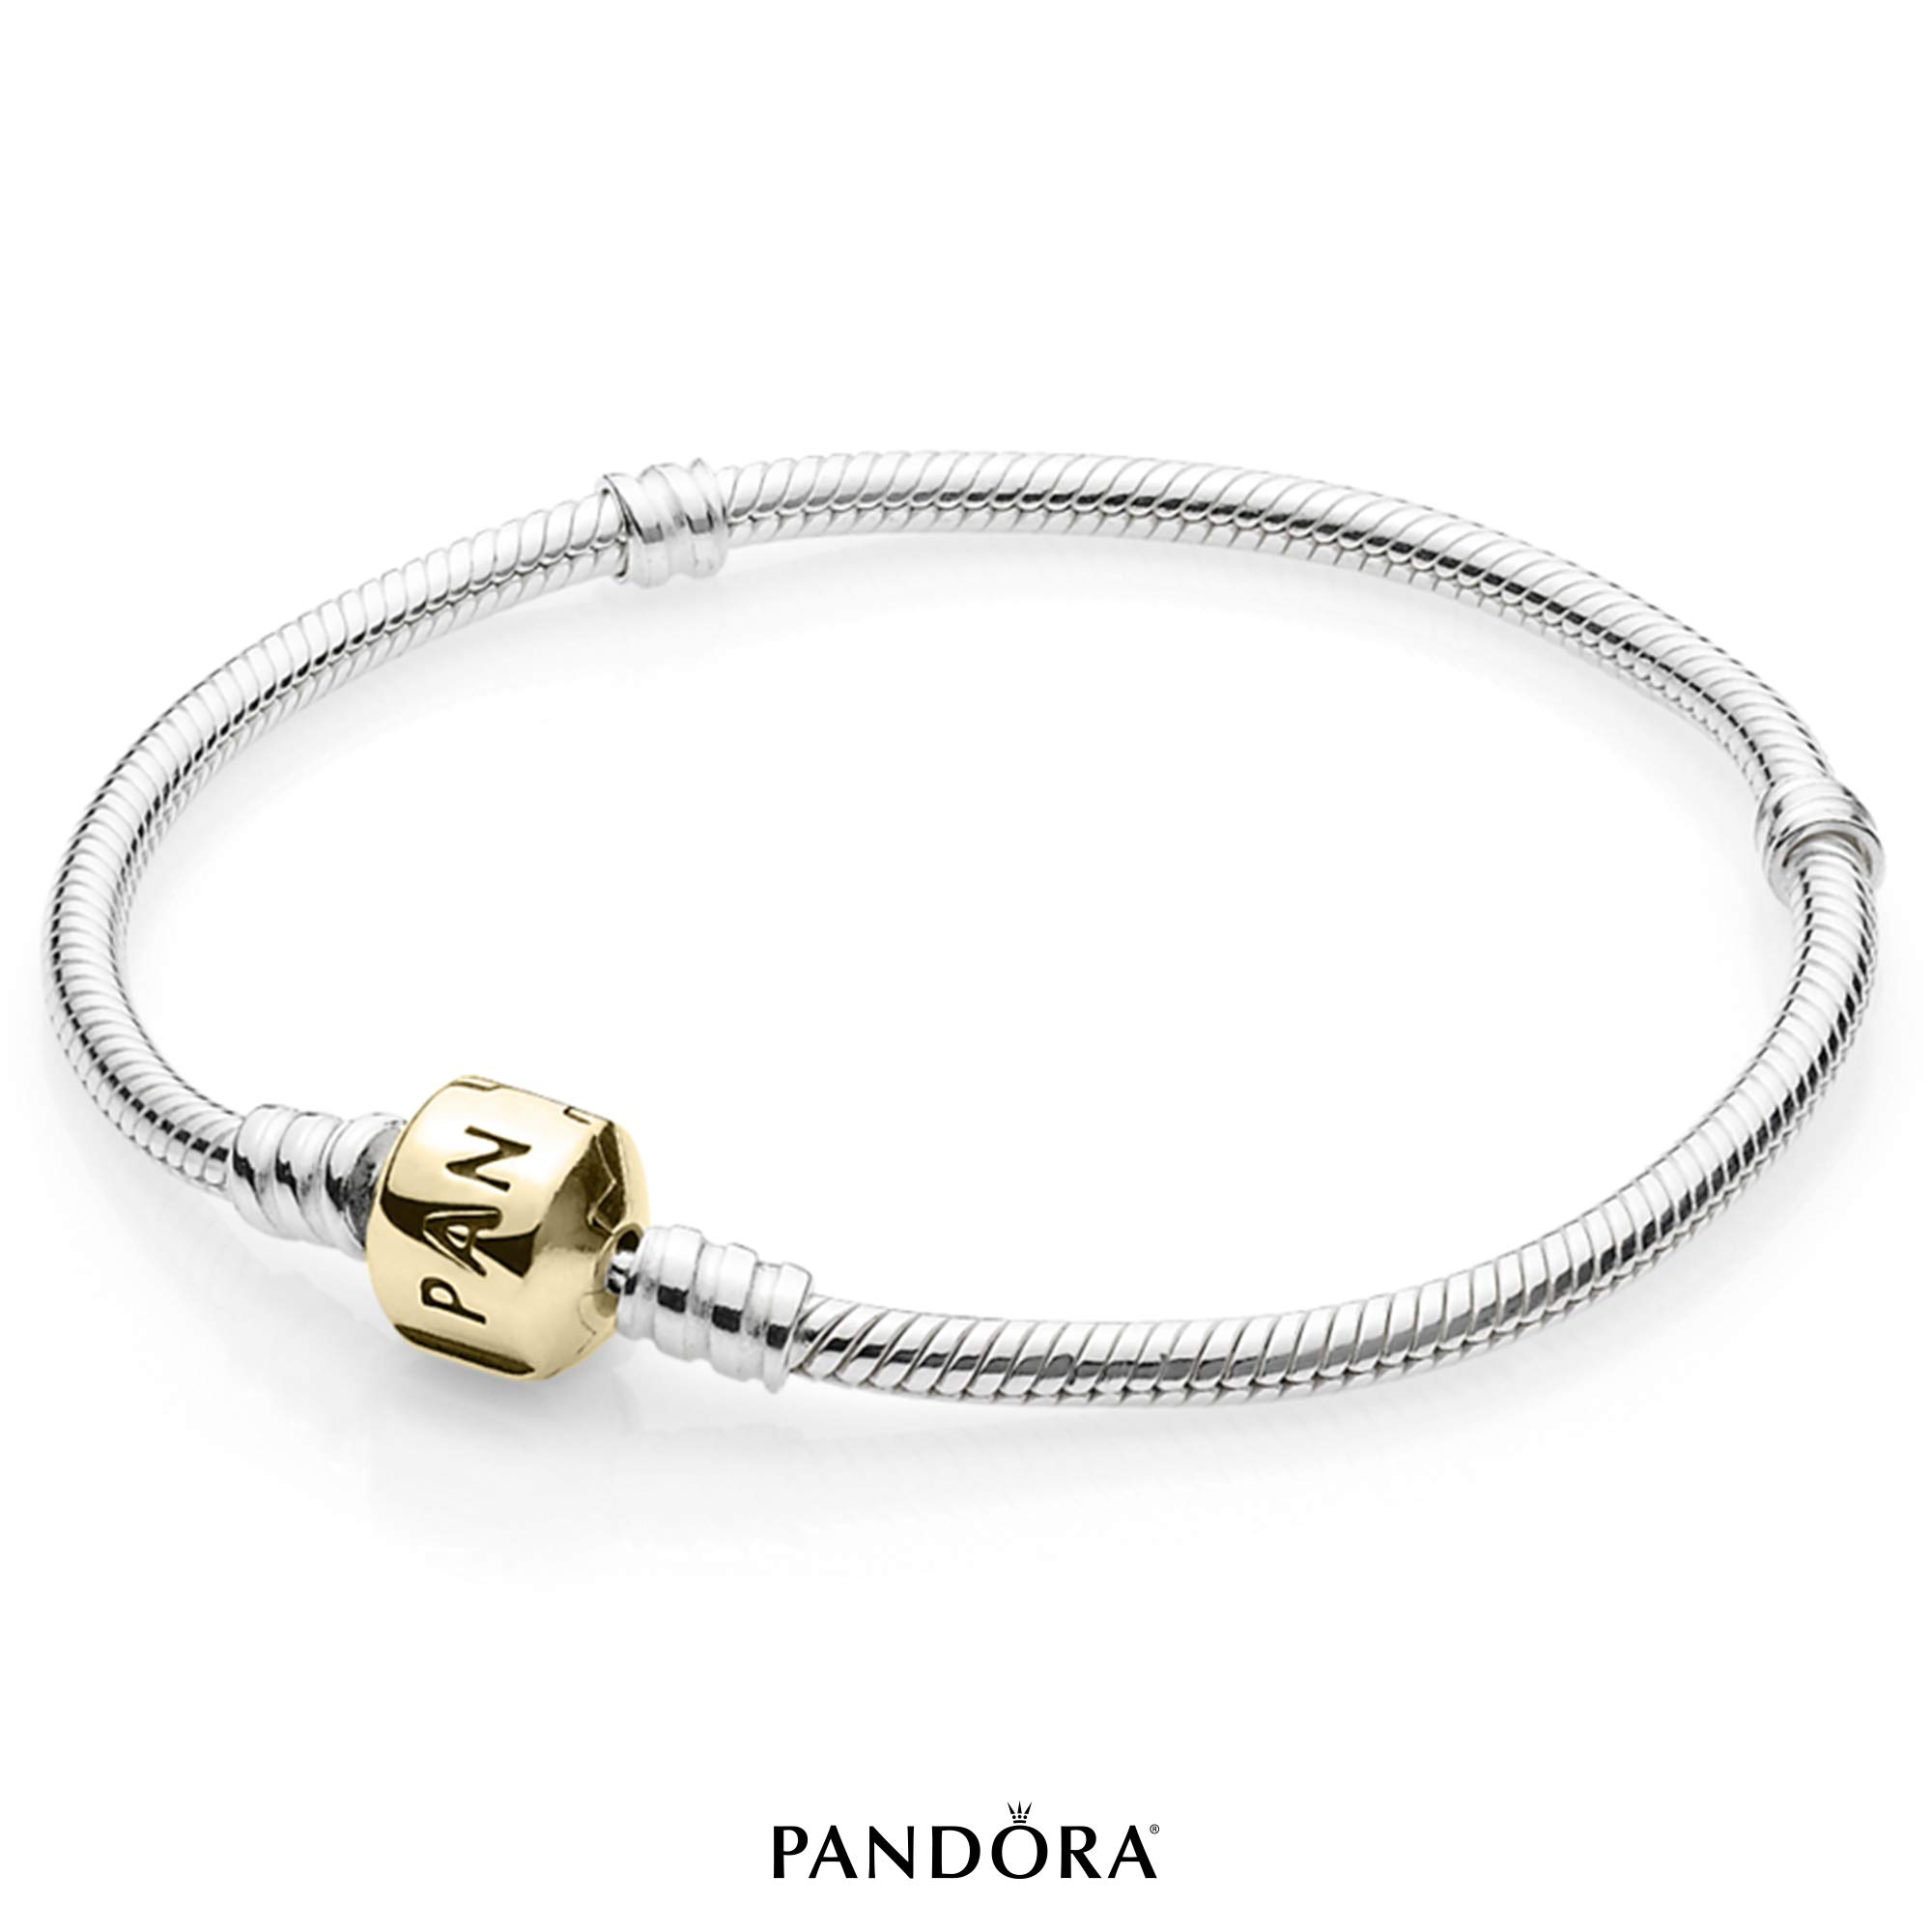 PANDORA Silver Charm Bracelet with 14K Gold Clasp, Sterling Silver, 7.1 in by PANDORA